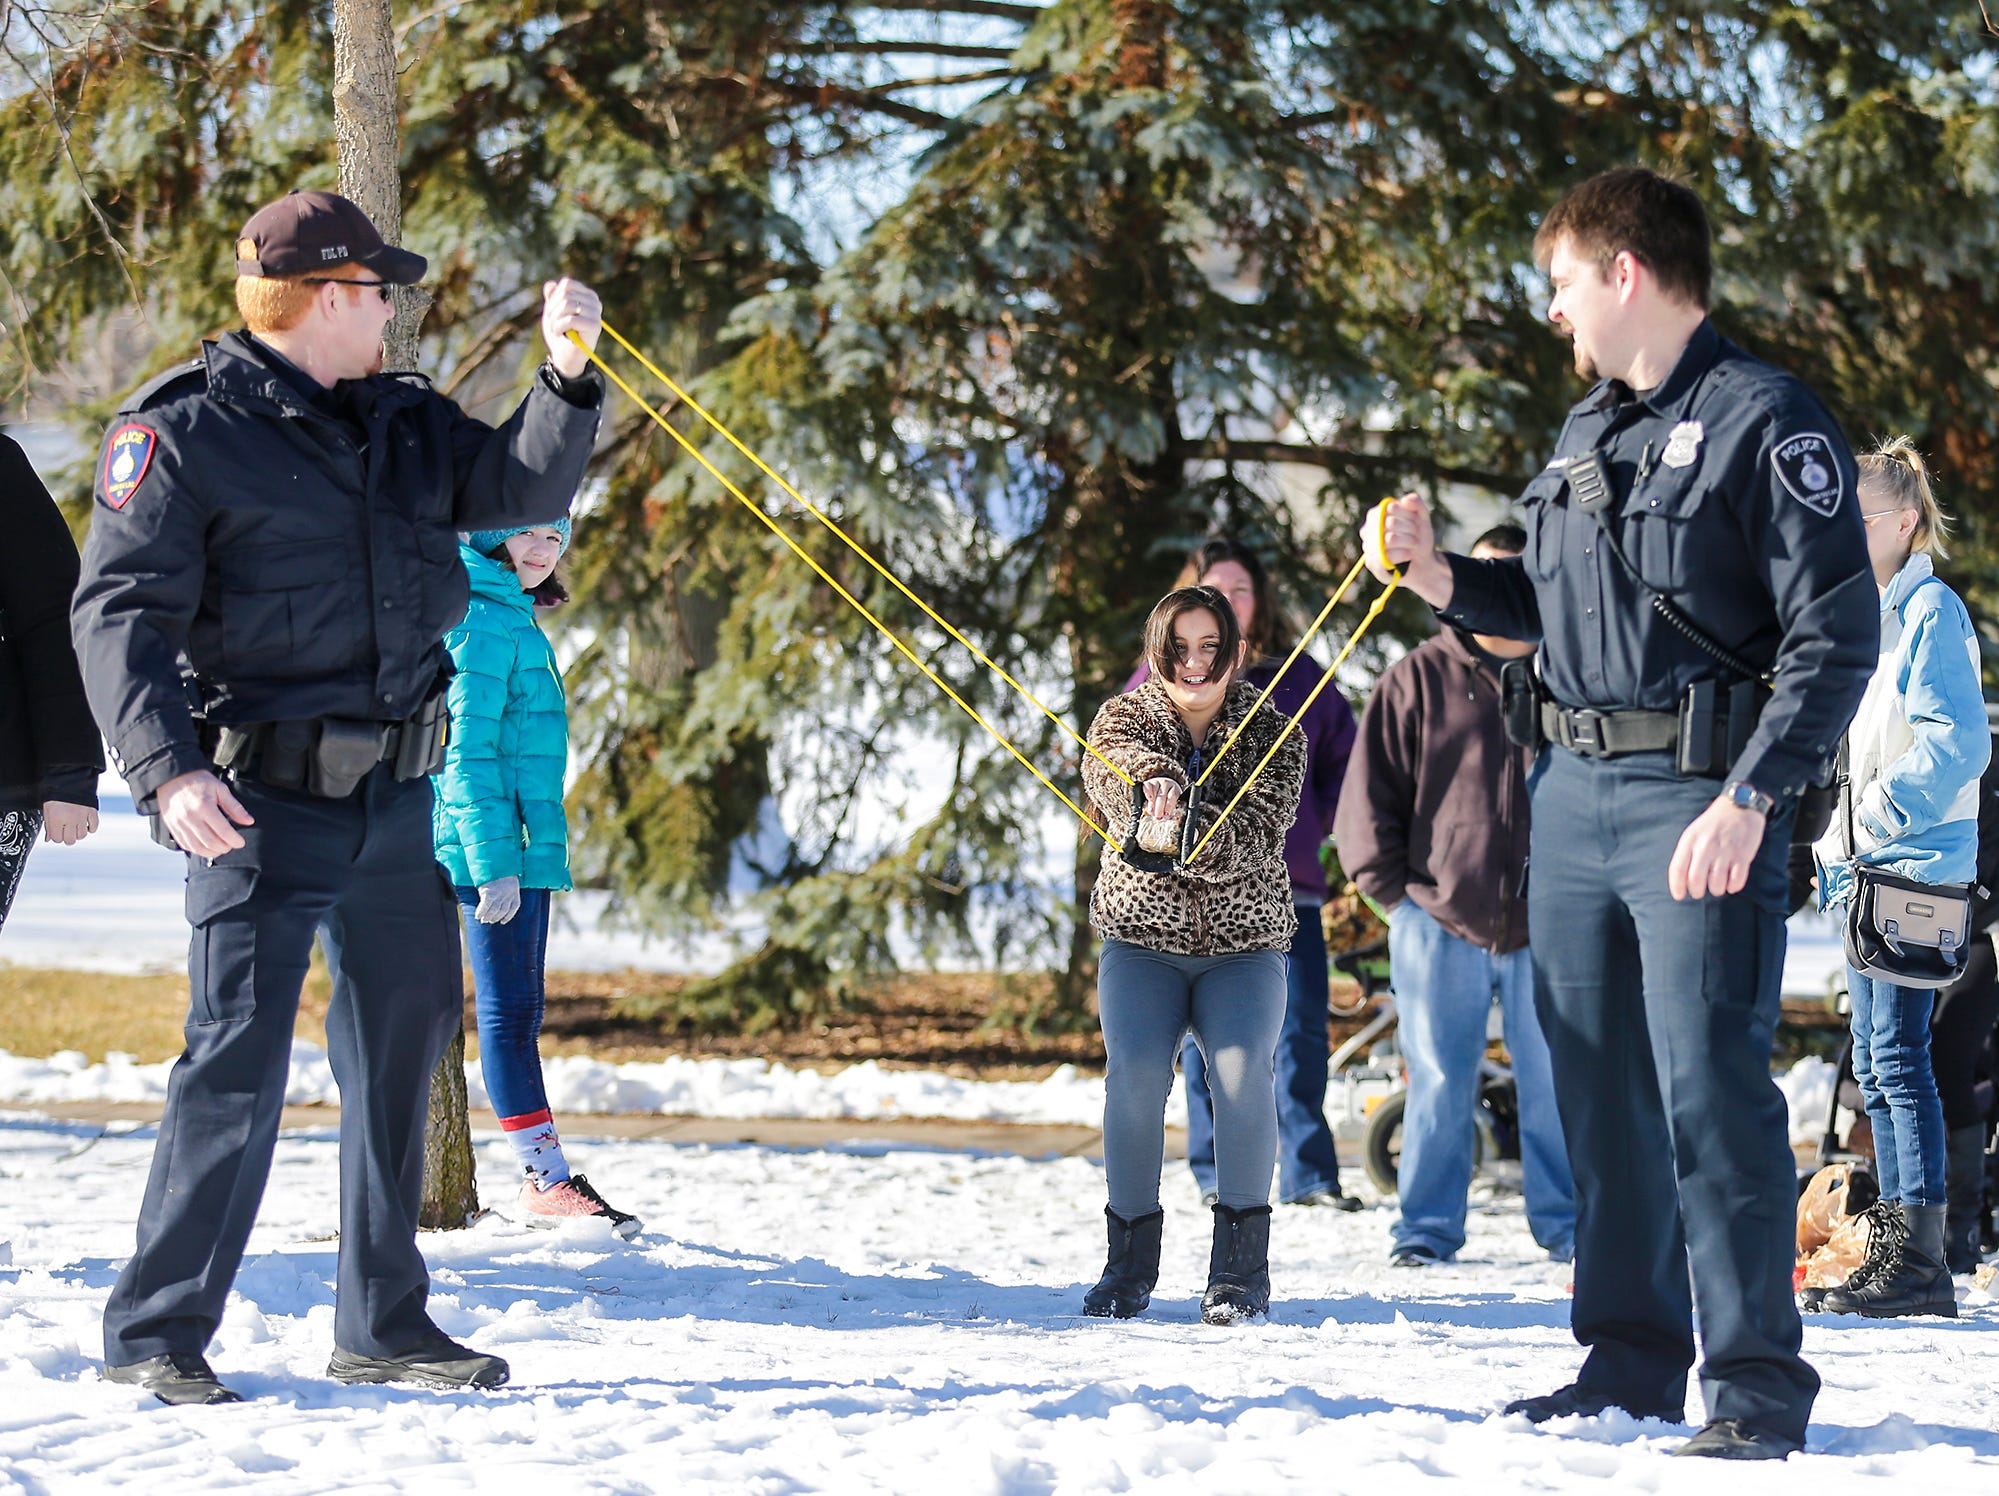 Fond du Lac Police officers Shawn Provot and Matt Chevremont hold a sling shot as Lita Basina winds up to launch a fruit cake at Winterfest Saturday, January 5, 2019 at Hamilton park in Fond du Lac, Wisconsin. Doug Raflik/USA TODAY NETWORK-Wisconsin